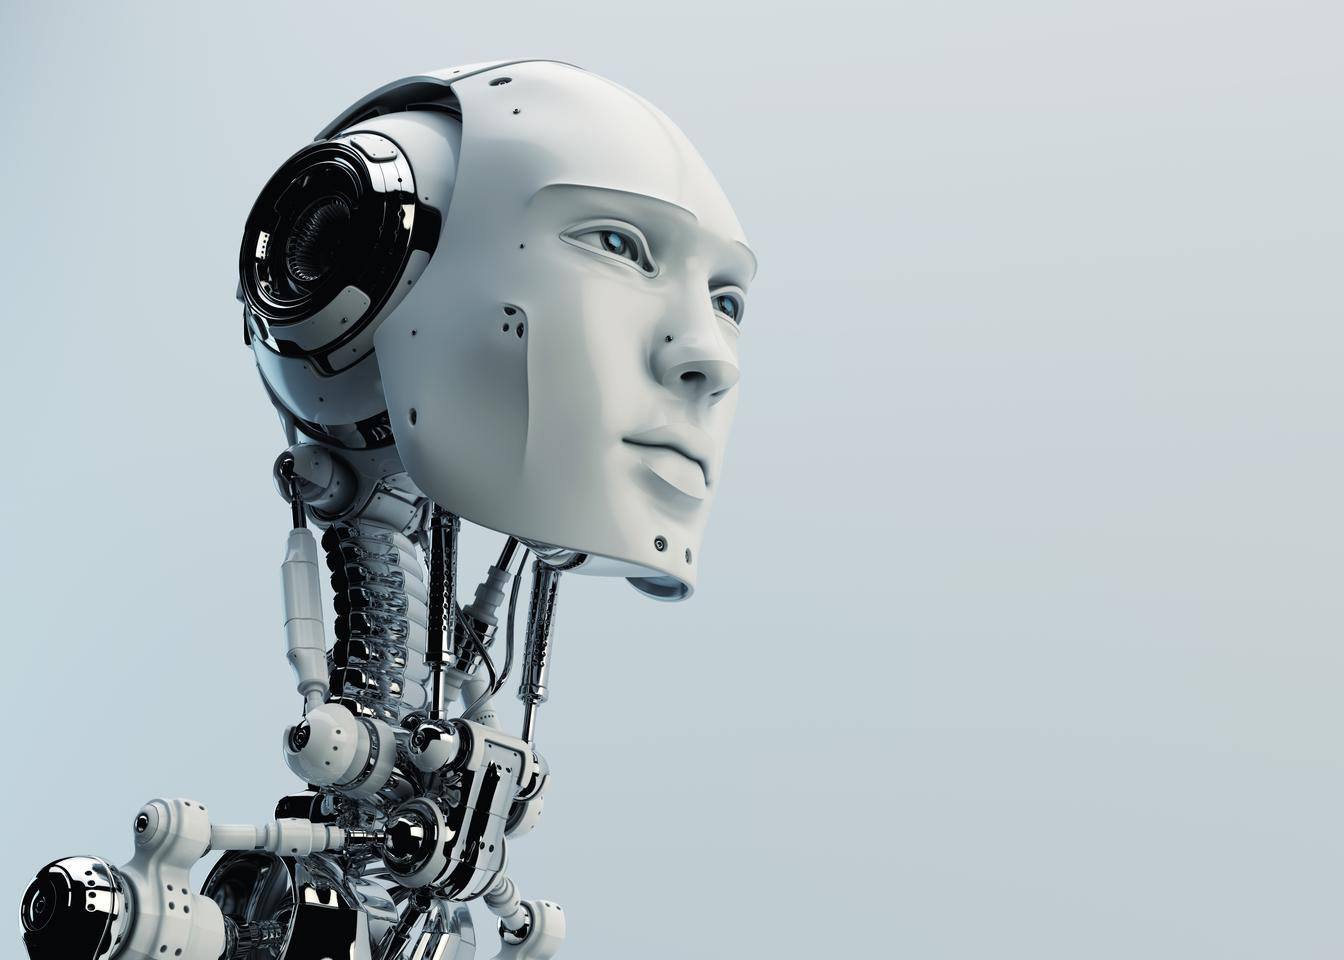 Researchers are exploring how they might create robots endowed with their own sense of morality (Photo: Shutterstock)